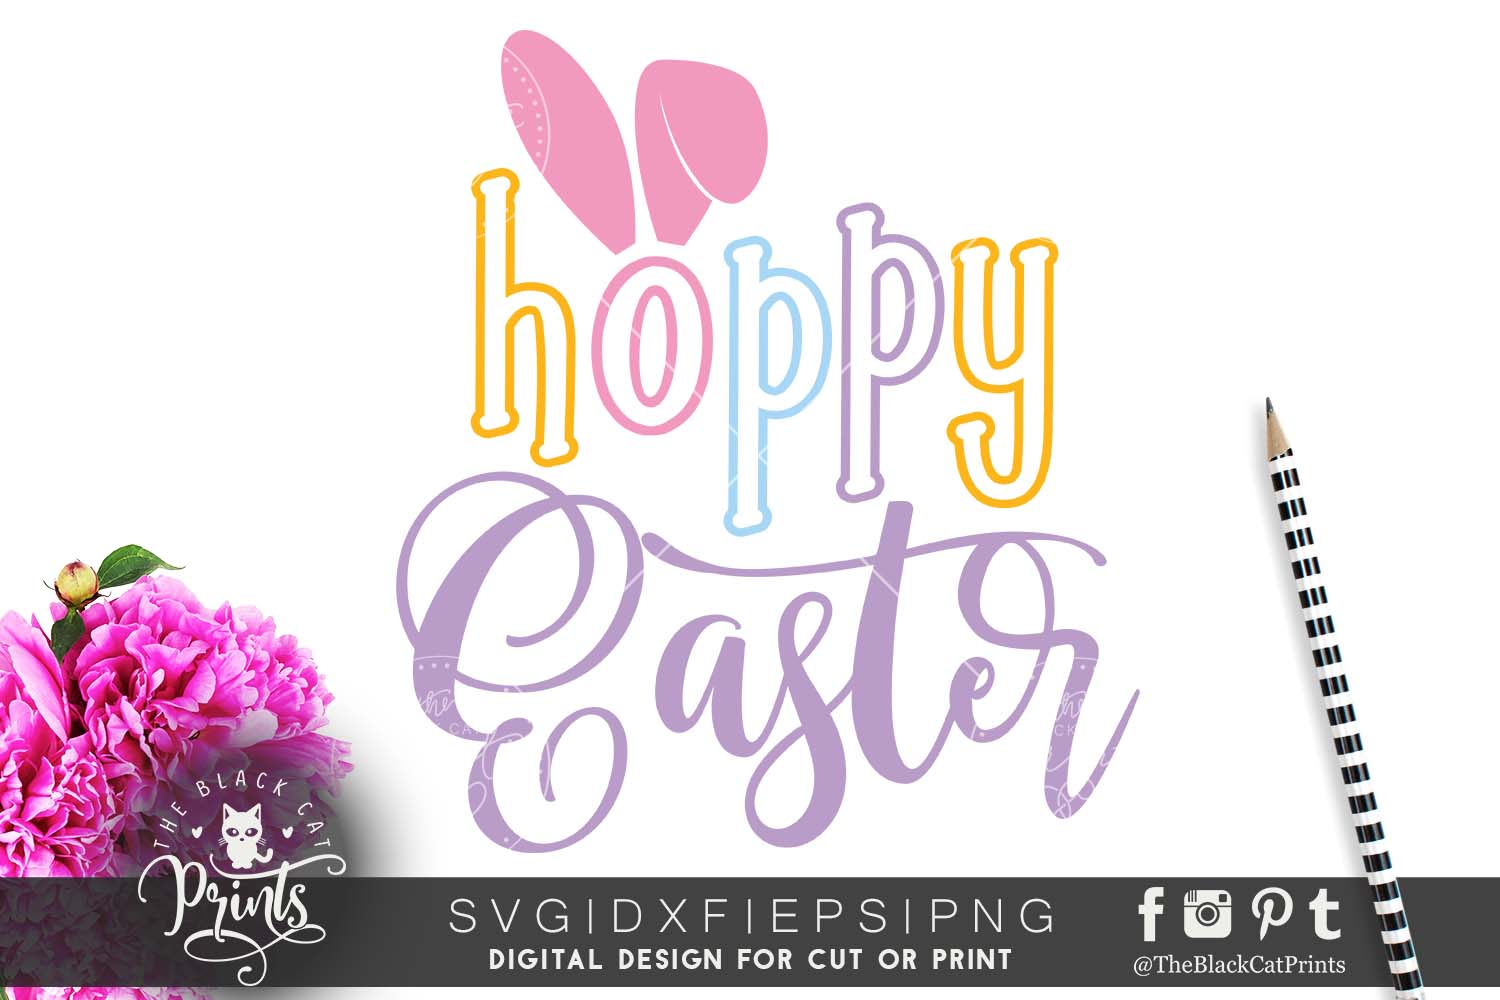 Hoppy Easter SVG DXF PNG EPS example image 1